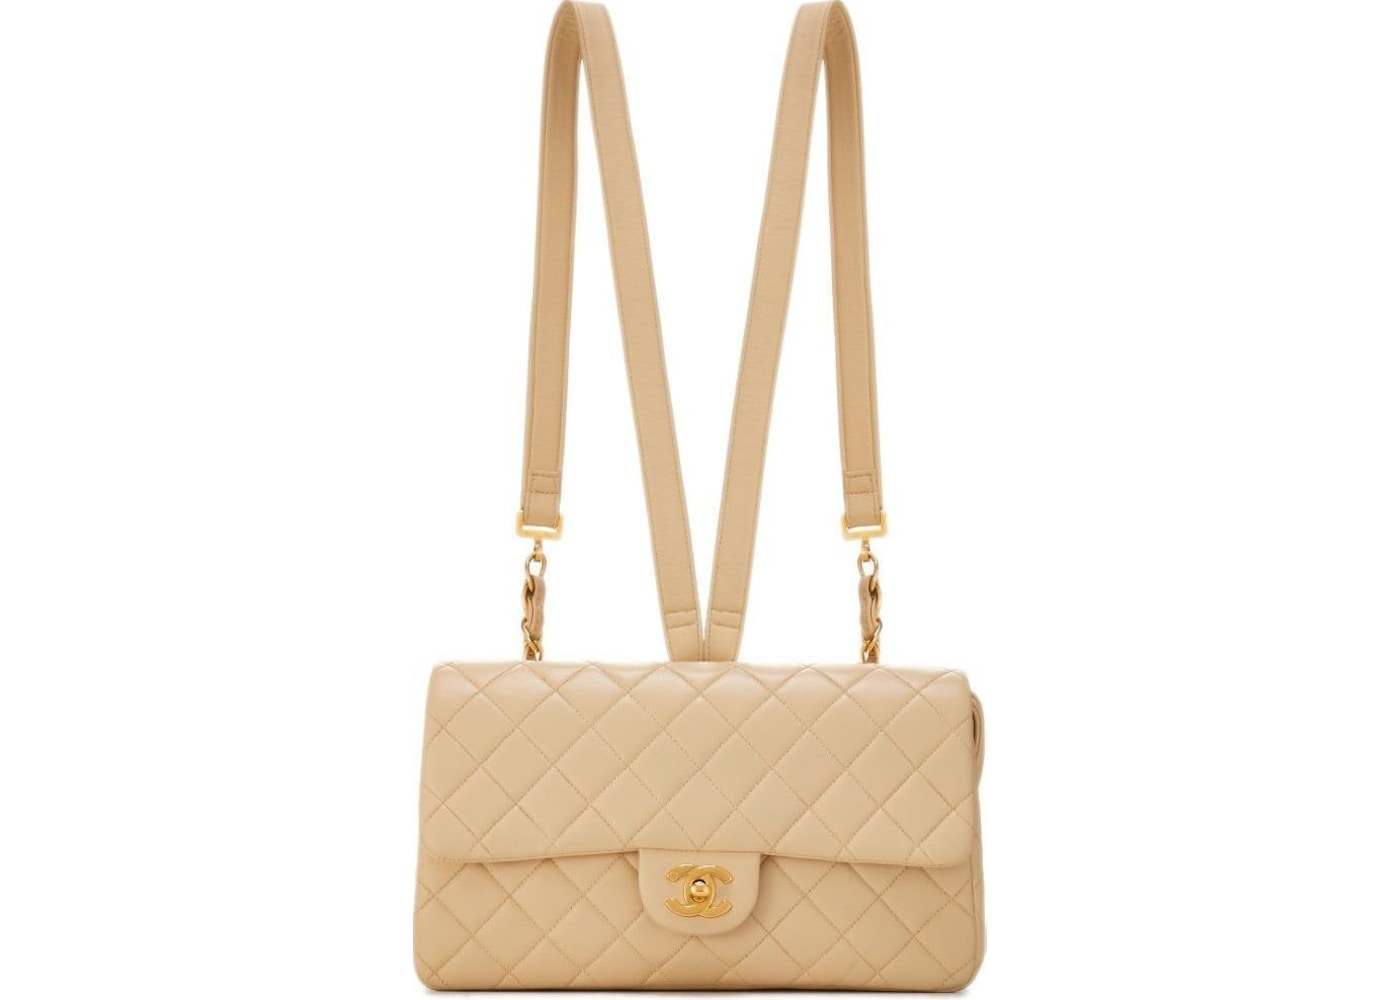 d3eca0e609ad Chanel Backpack Classic Flap Diamond Quilted Beige